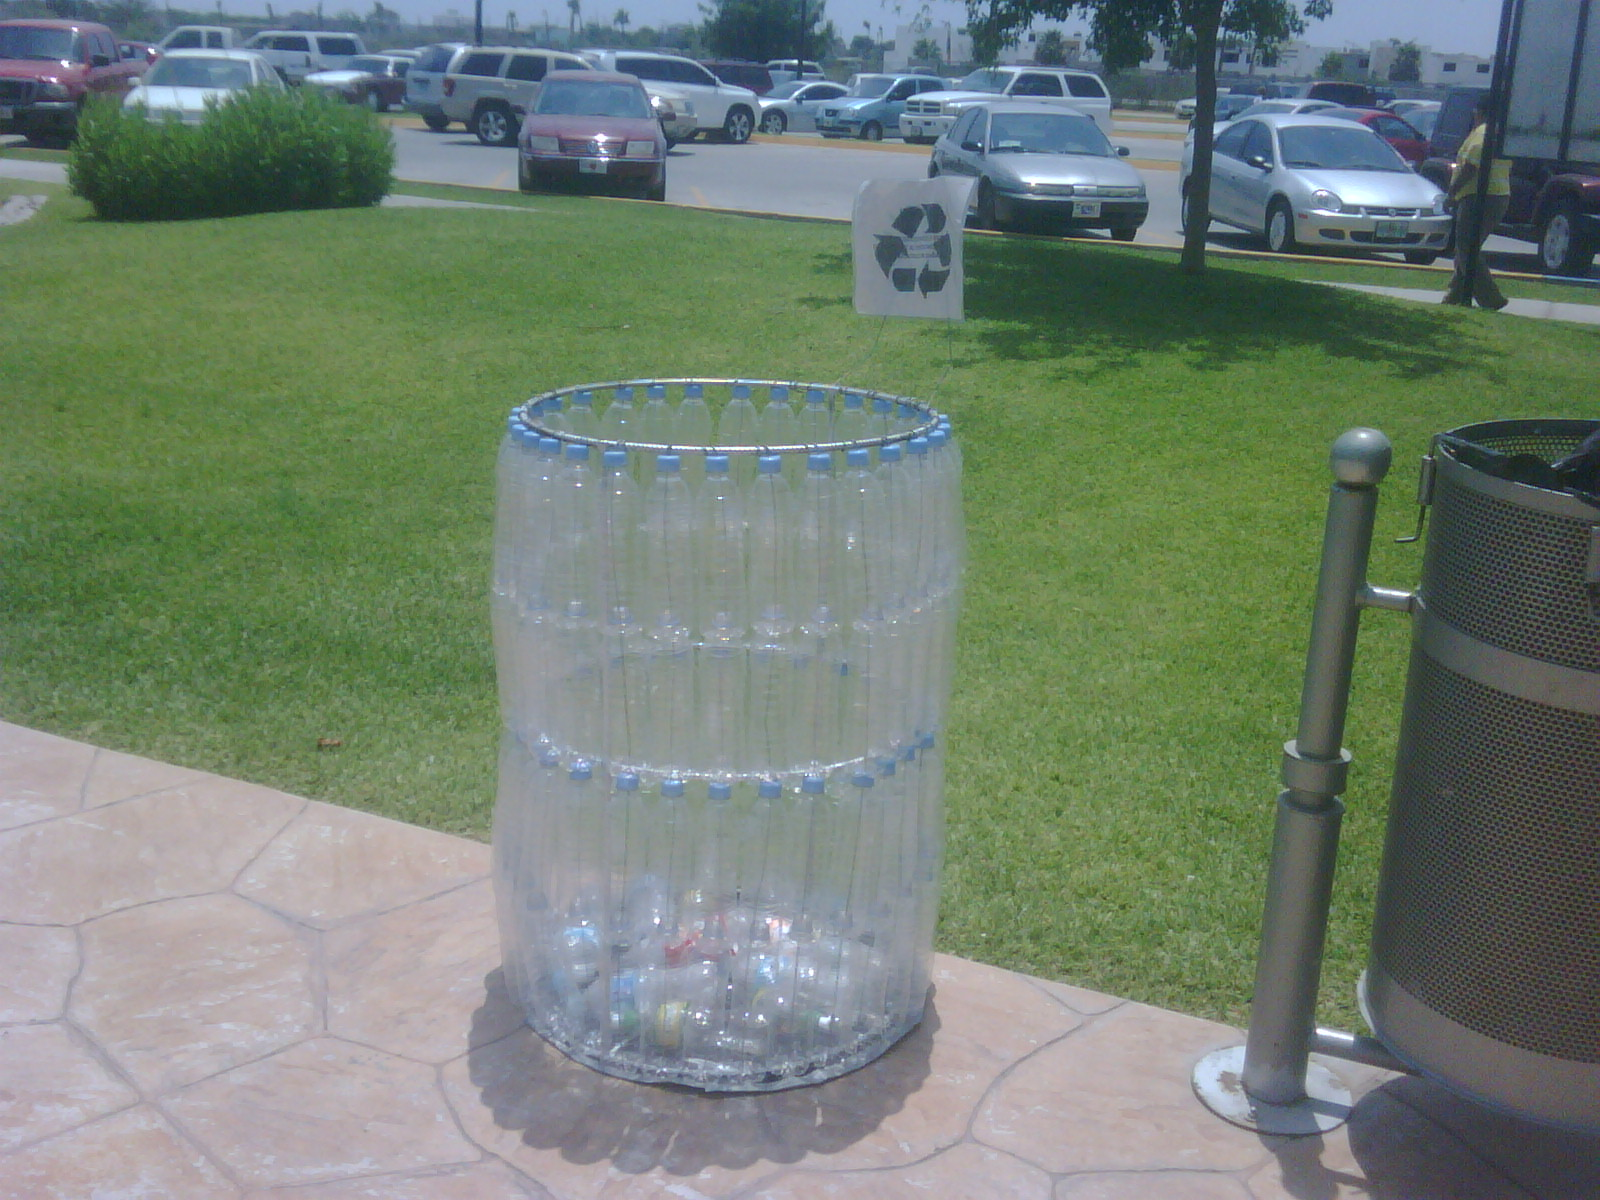 Trash can made of plastic bottles